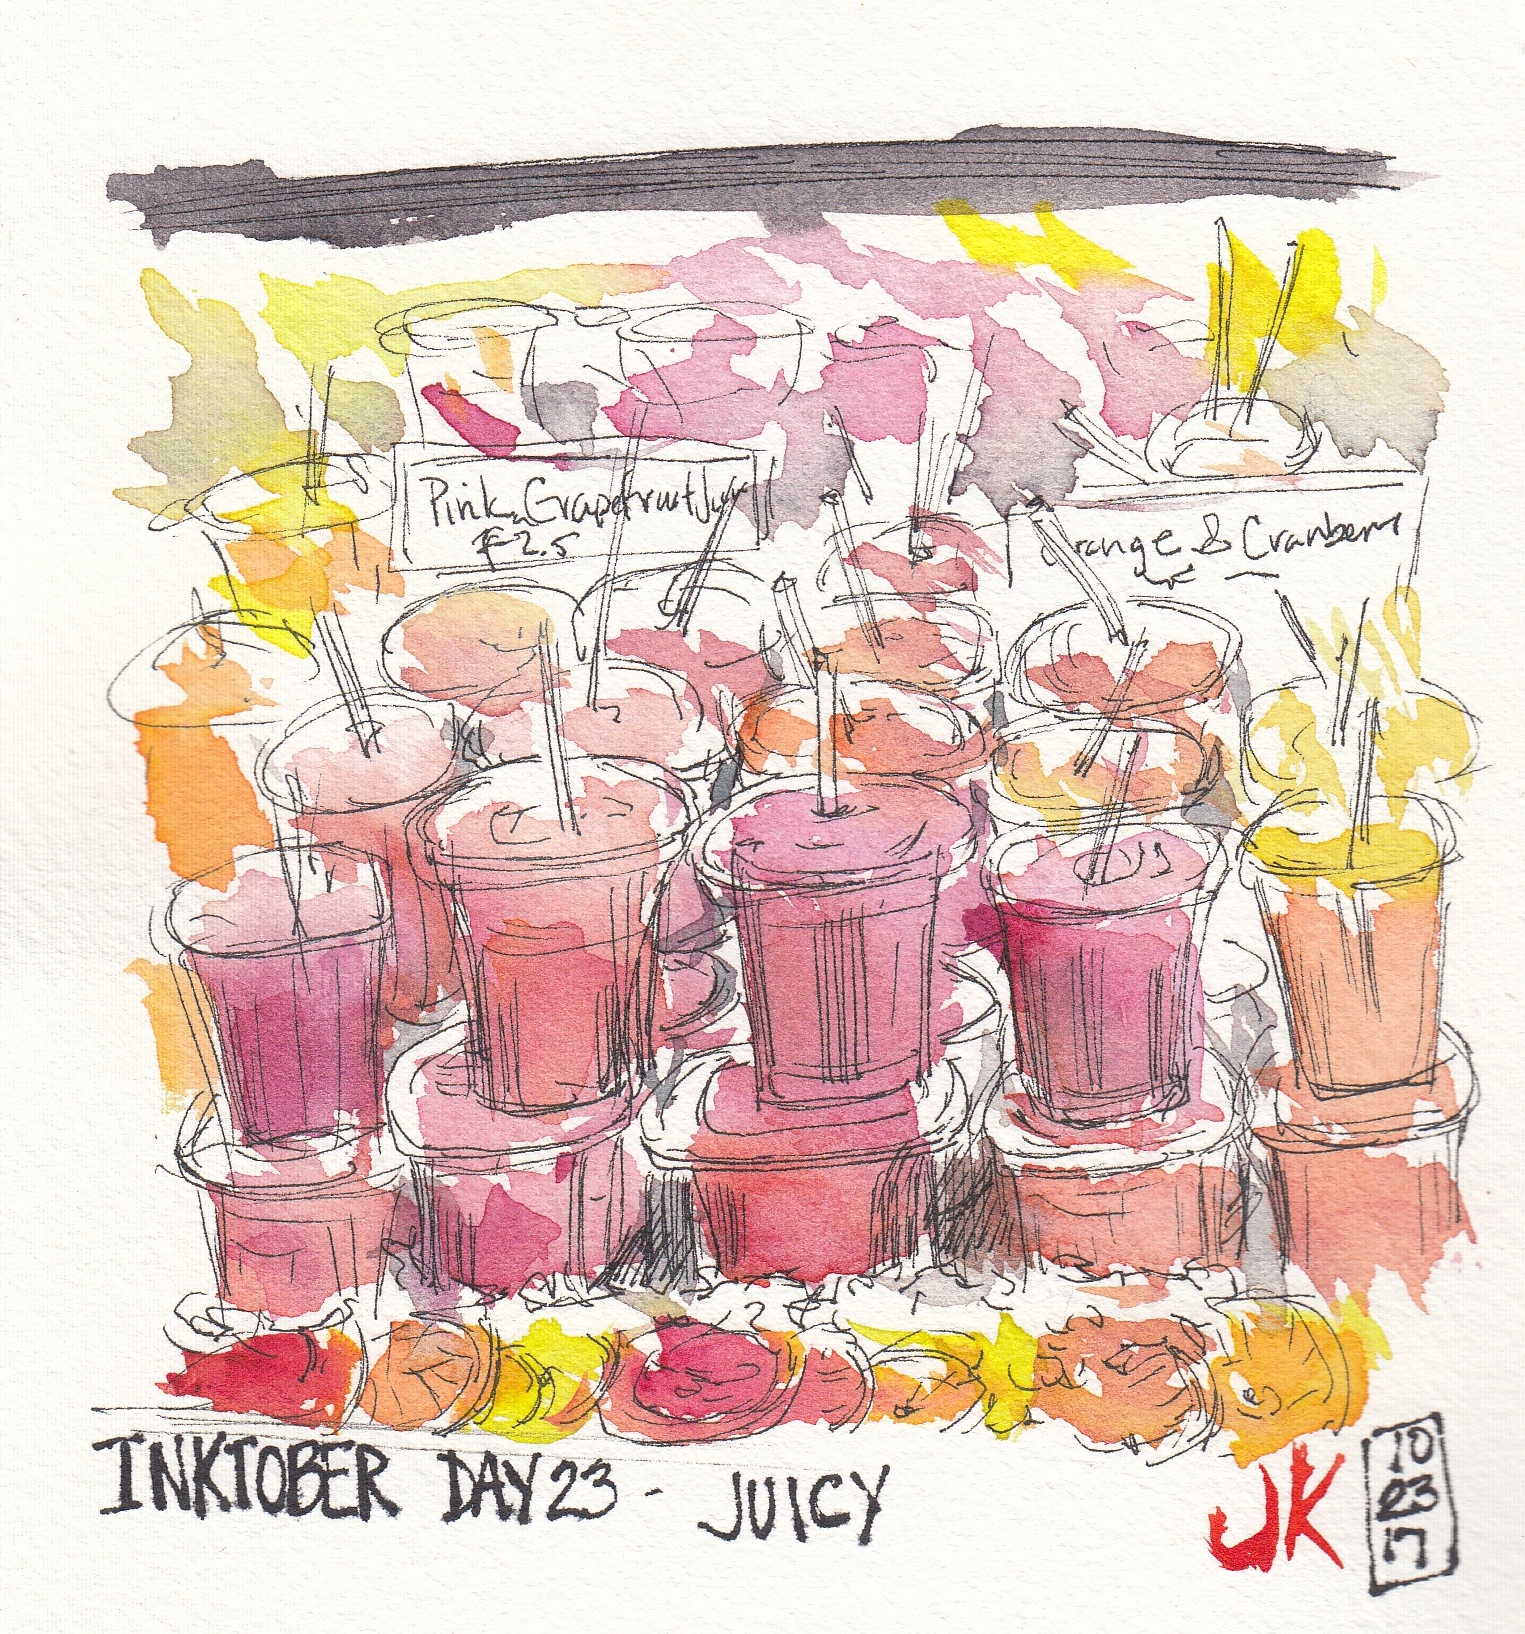 Day 23 - JUICY